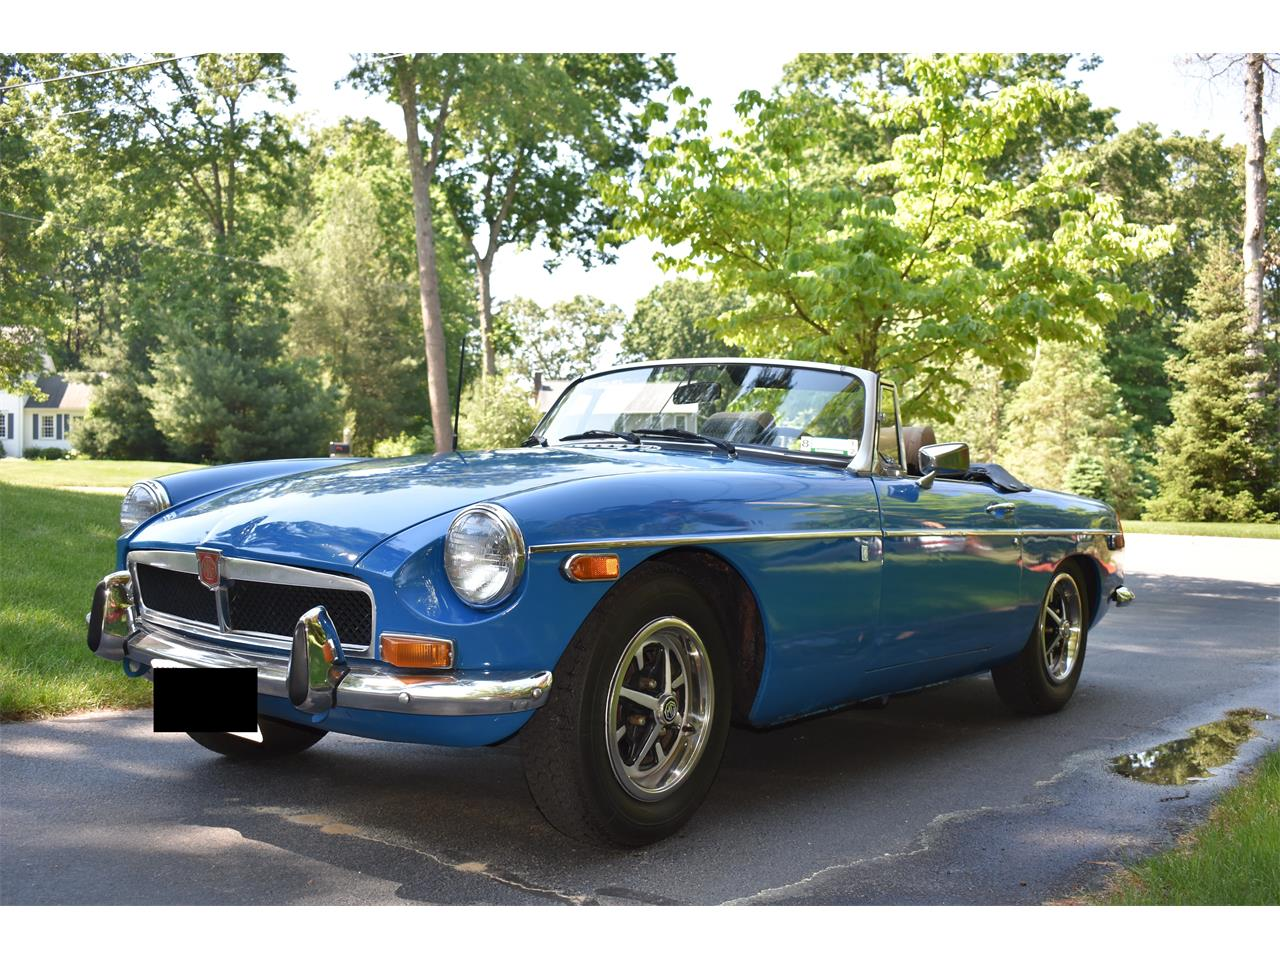 Large Picture of '74 MGB located in Franklin Massachusetts - $7,500.00 - LB9Q